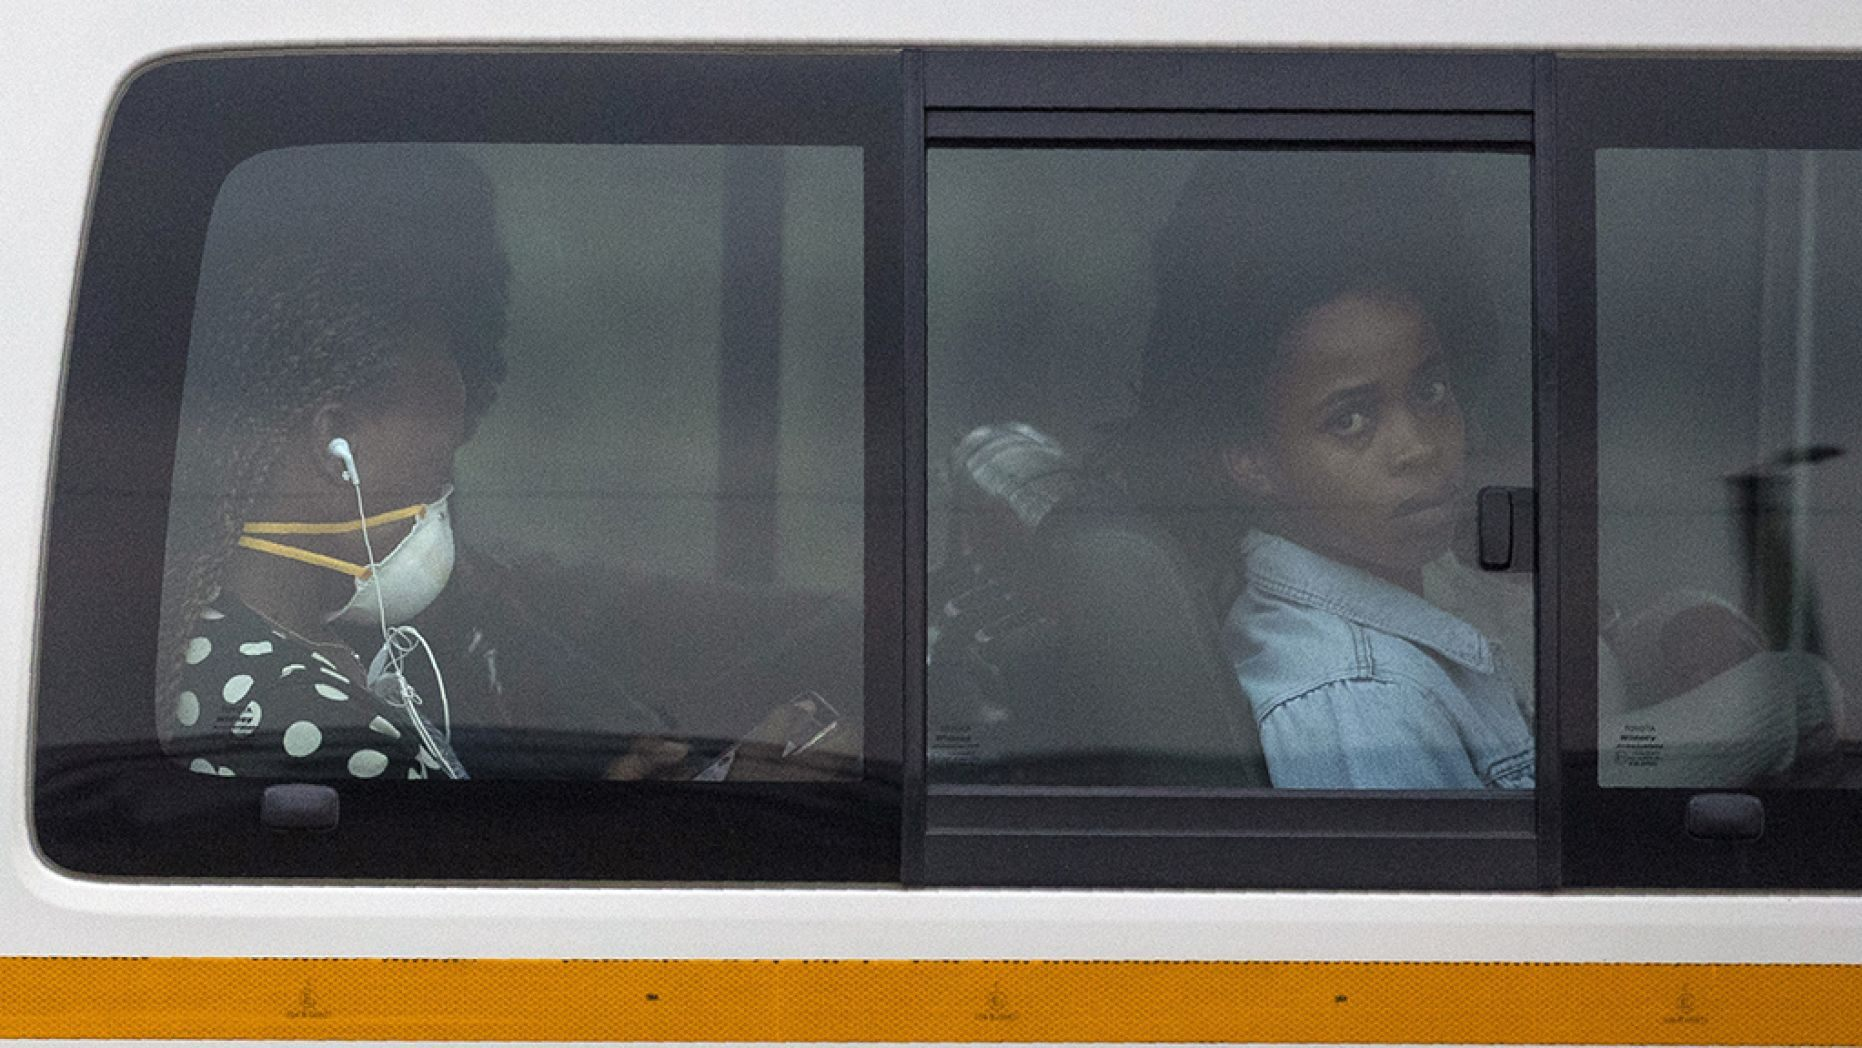 Passengers sit inside a minibus taxi on their way home to Kwa-Thema, a town east of Johannesburg, South Africa, on Tuesday.